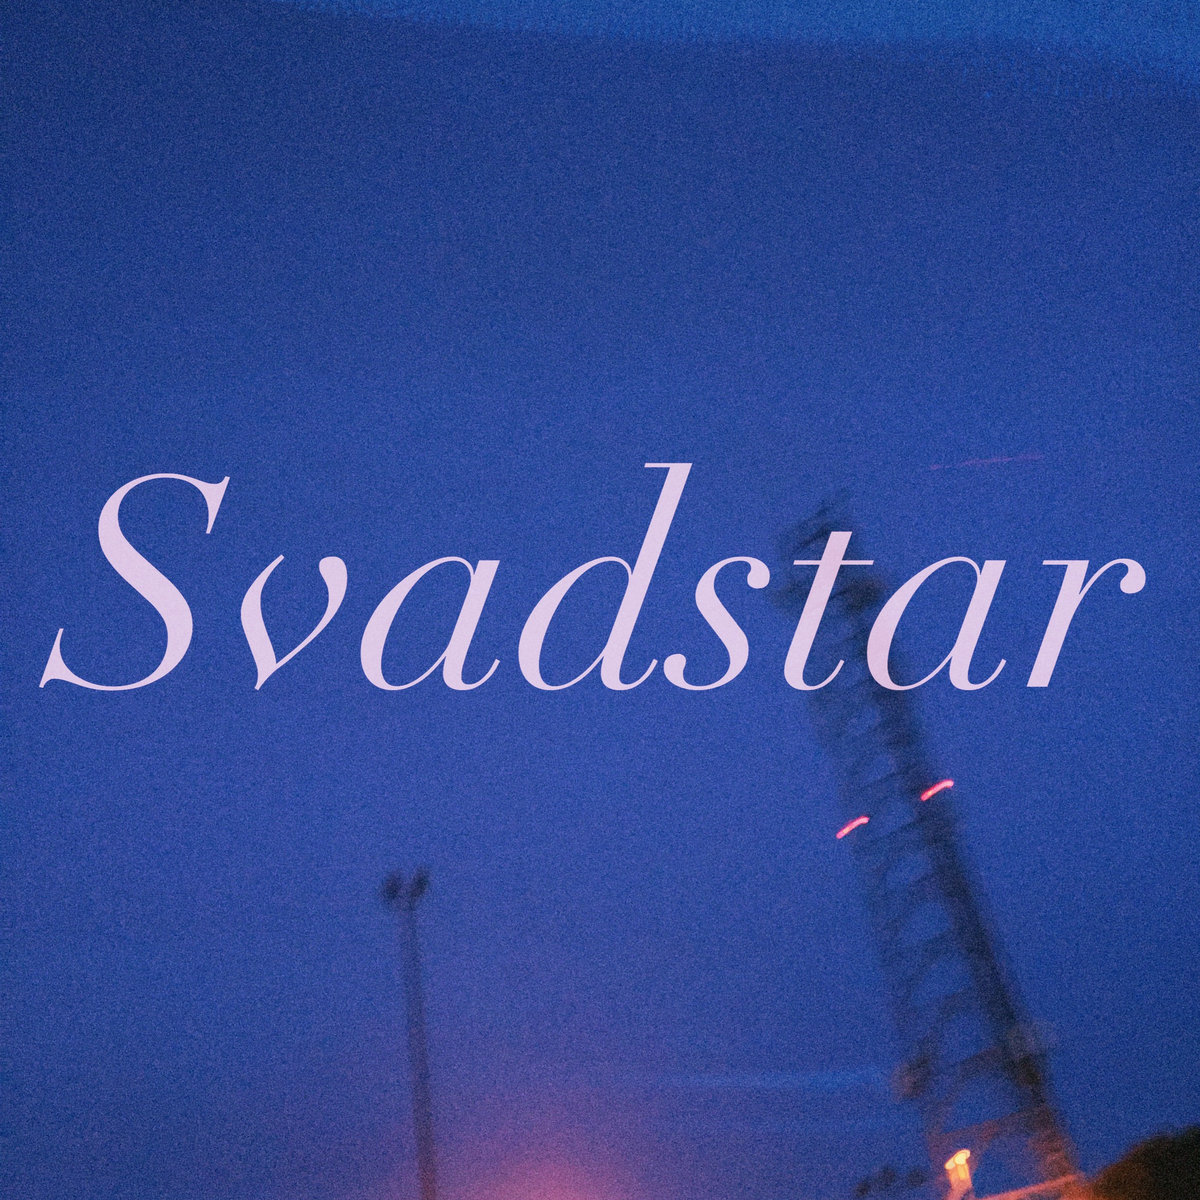 Maybe Were From The Same Star Svadstar